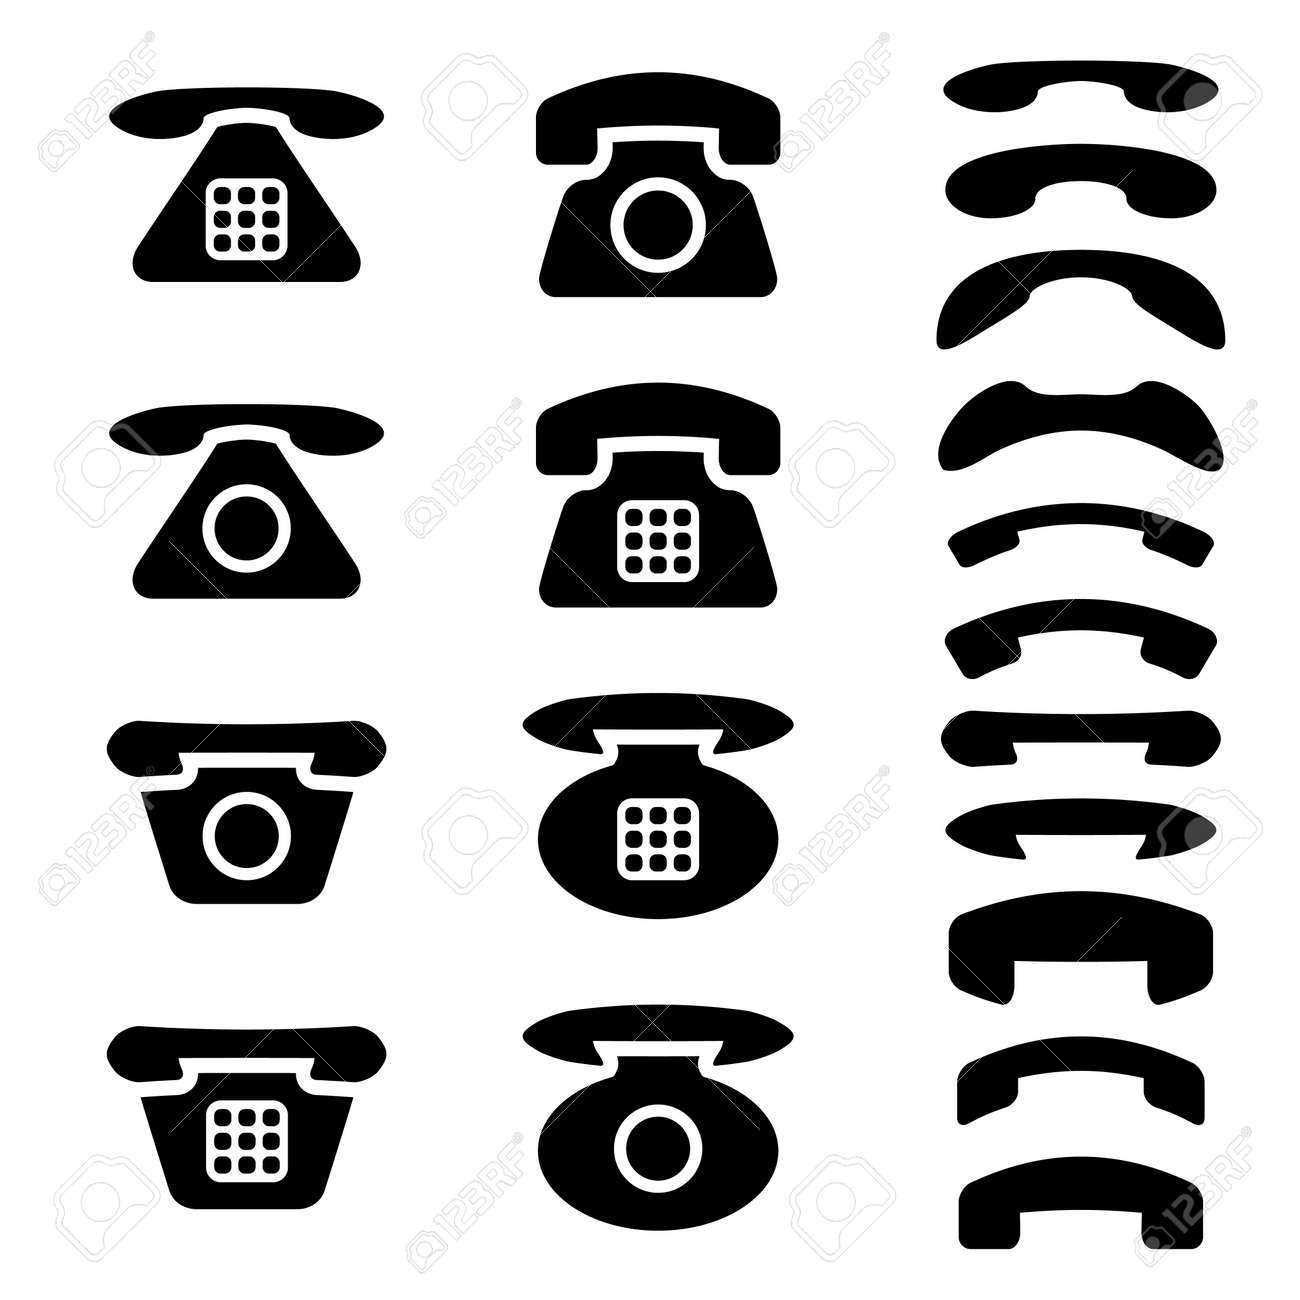 Vector black old phone and receiver symbols royalty free cliparts vector black old phone and receiver symbols stock vector 11564004 biocorpaavc